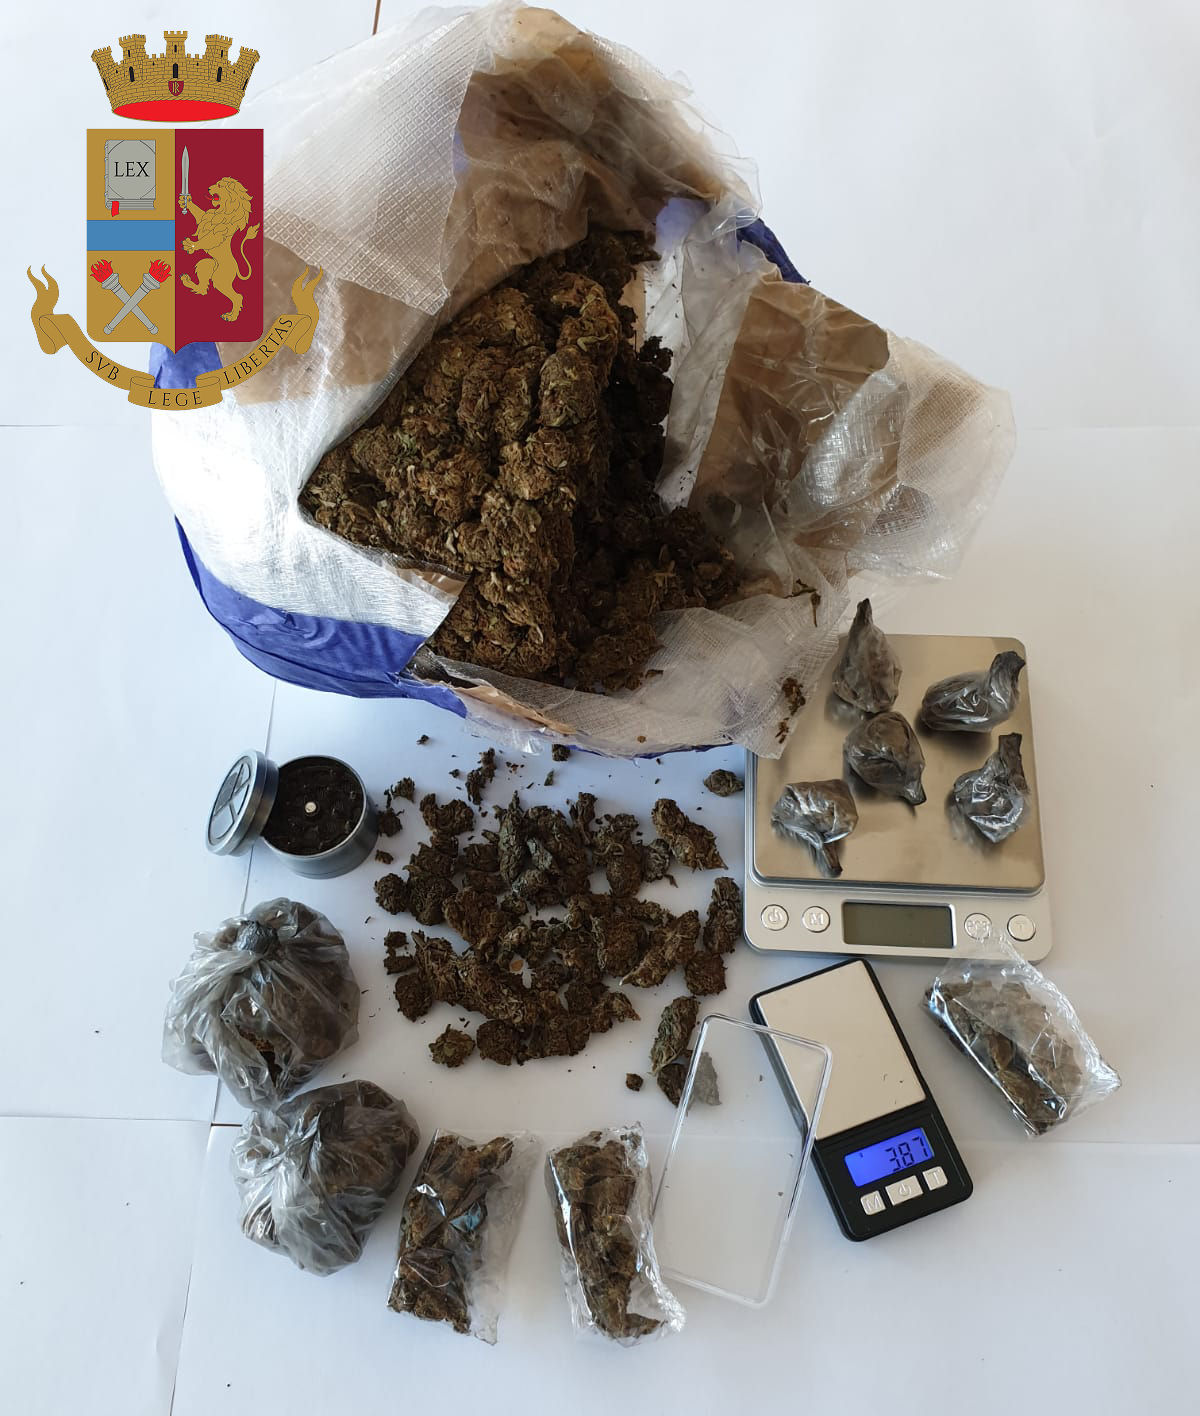 Spaccia marijuana in casa. Sequestrati sette etti di stupefacente